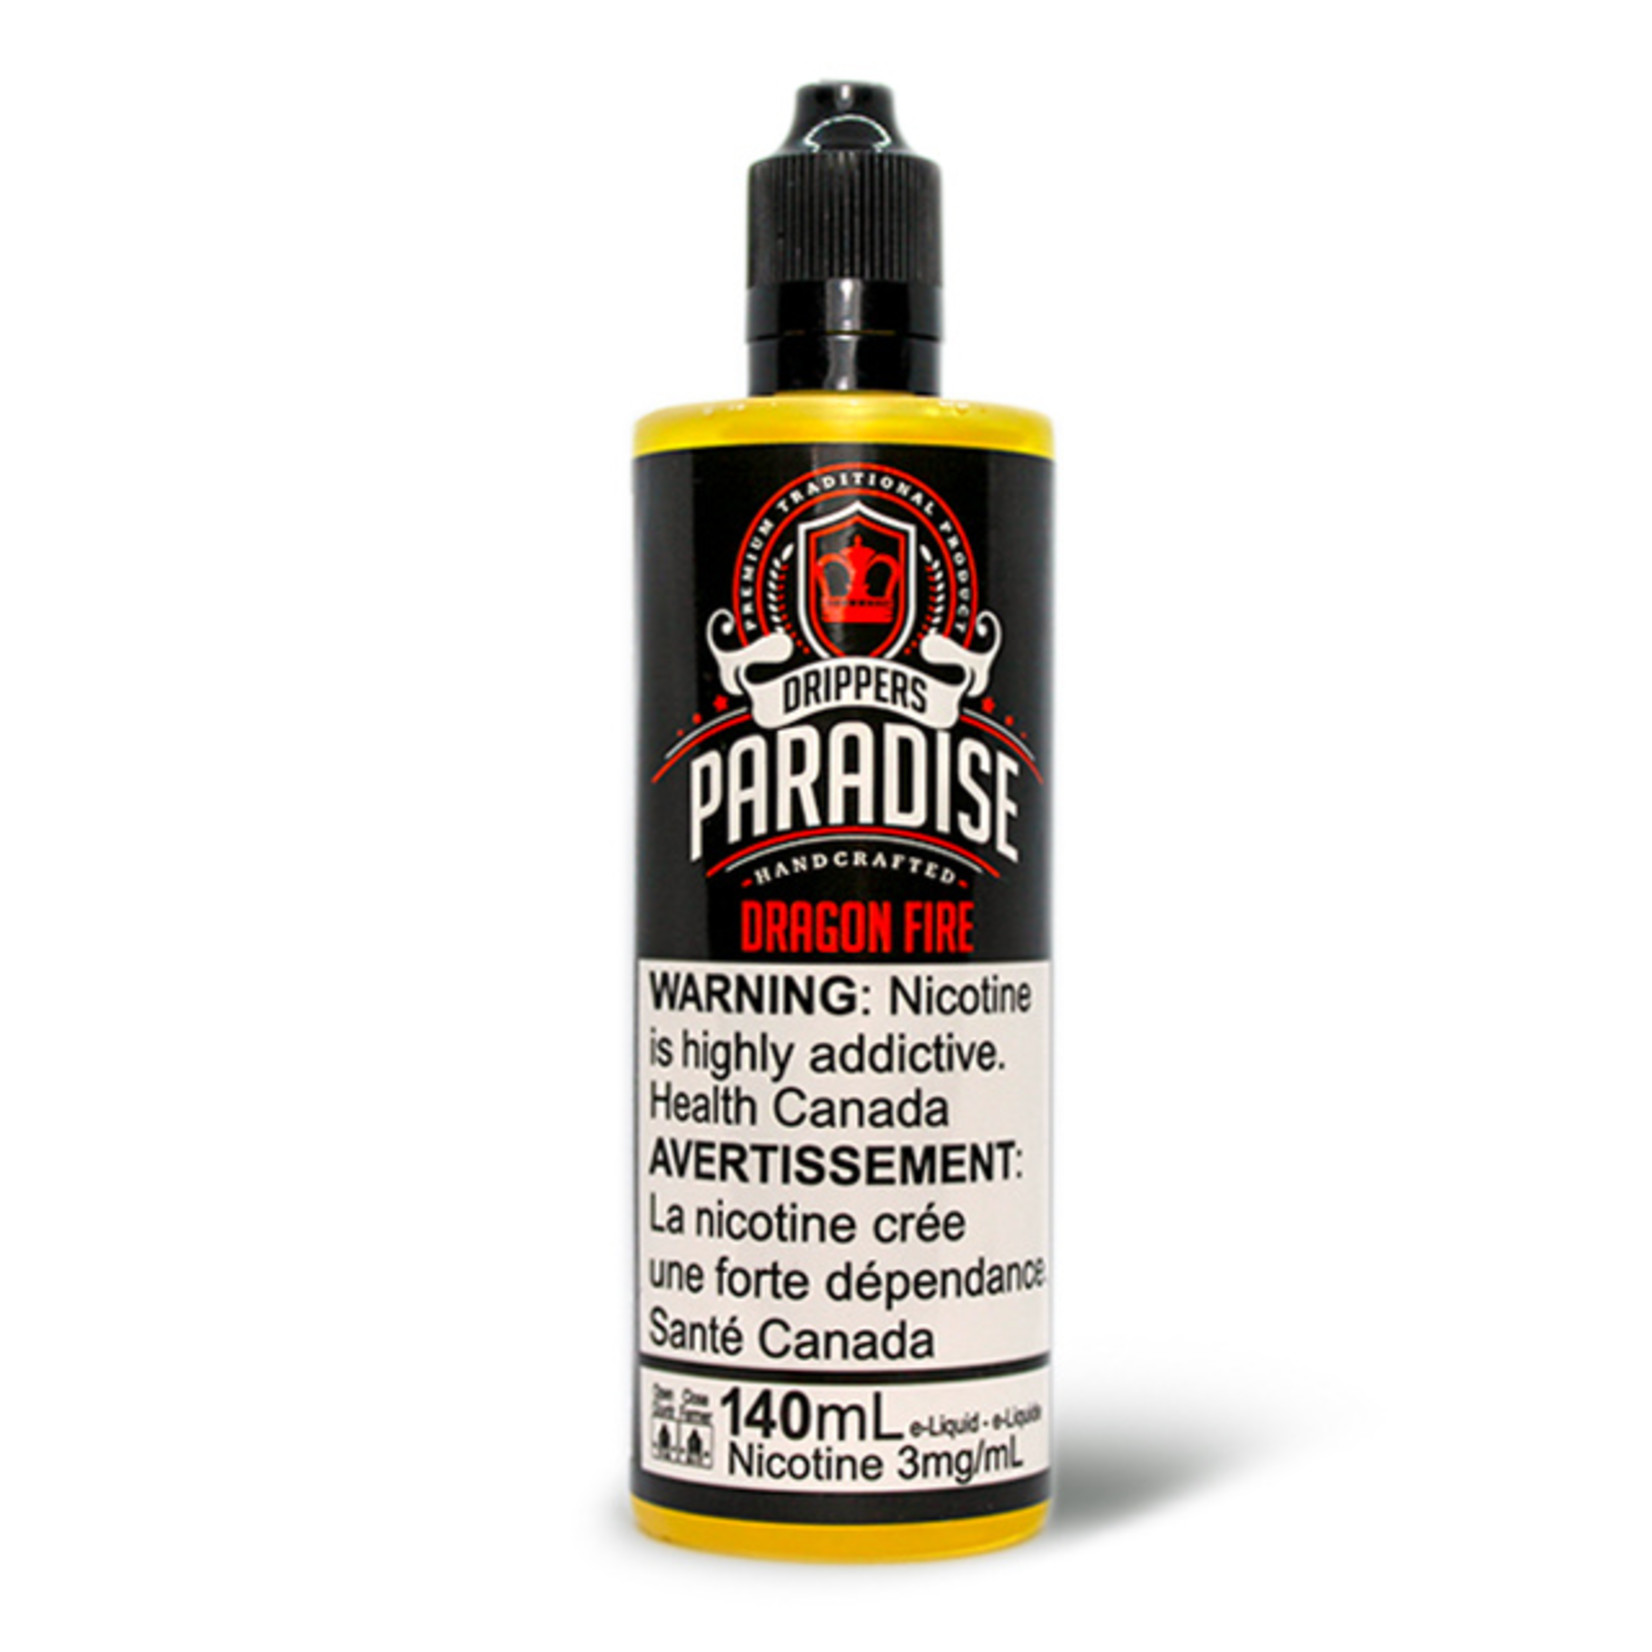 Maddog Drippers Paradise Dragon Fire